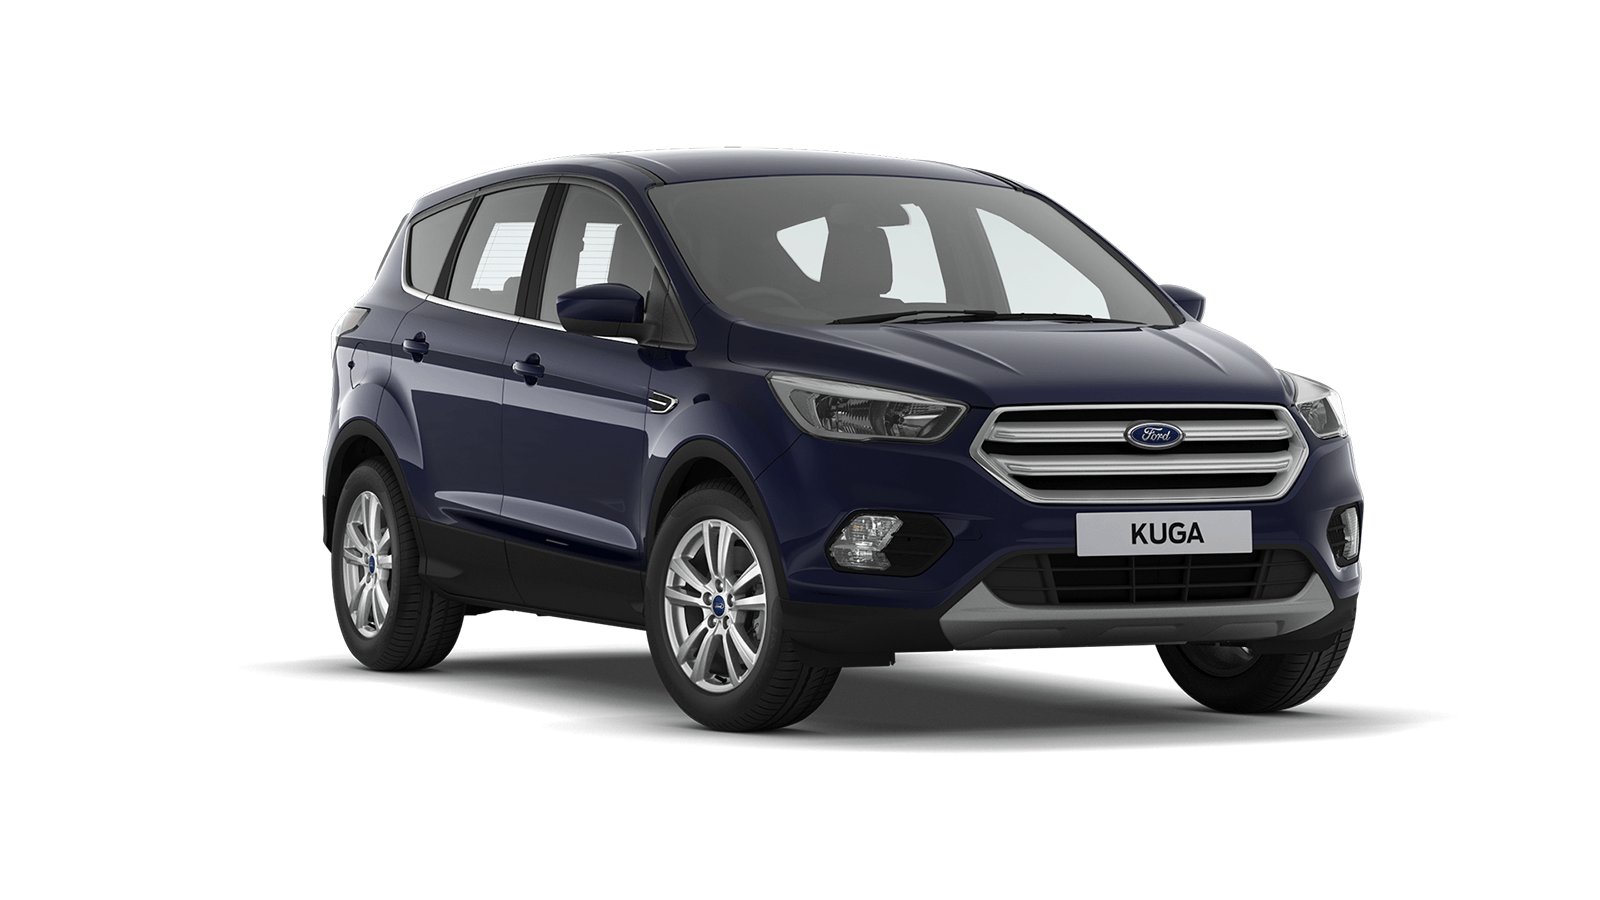 Ford Kuga at RGR Garages